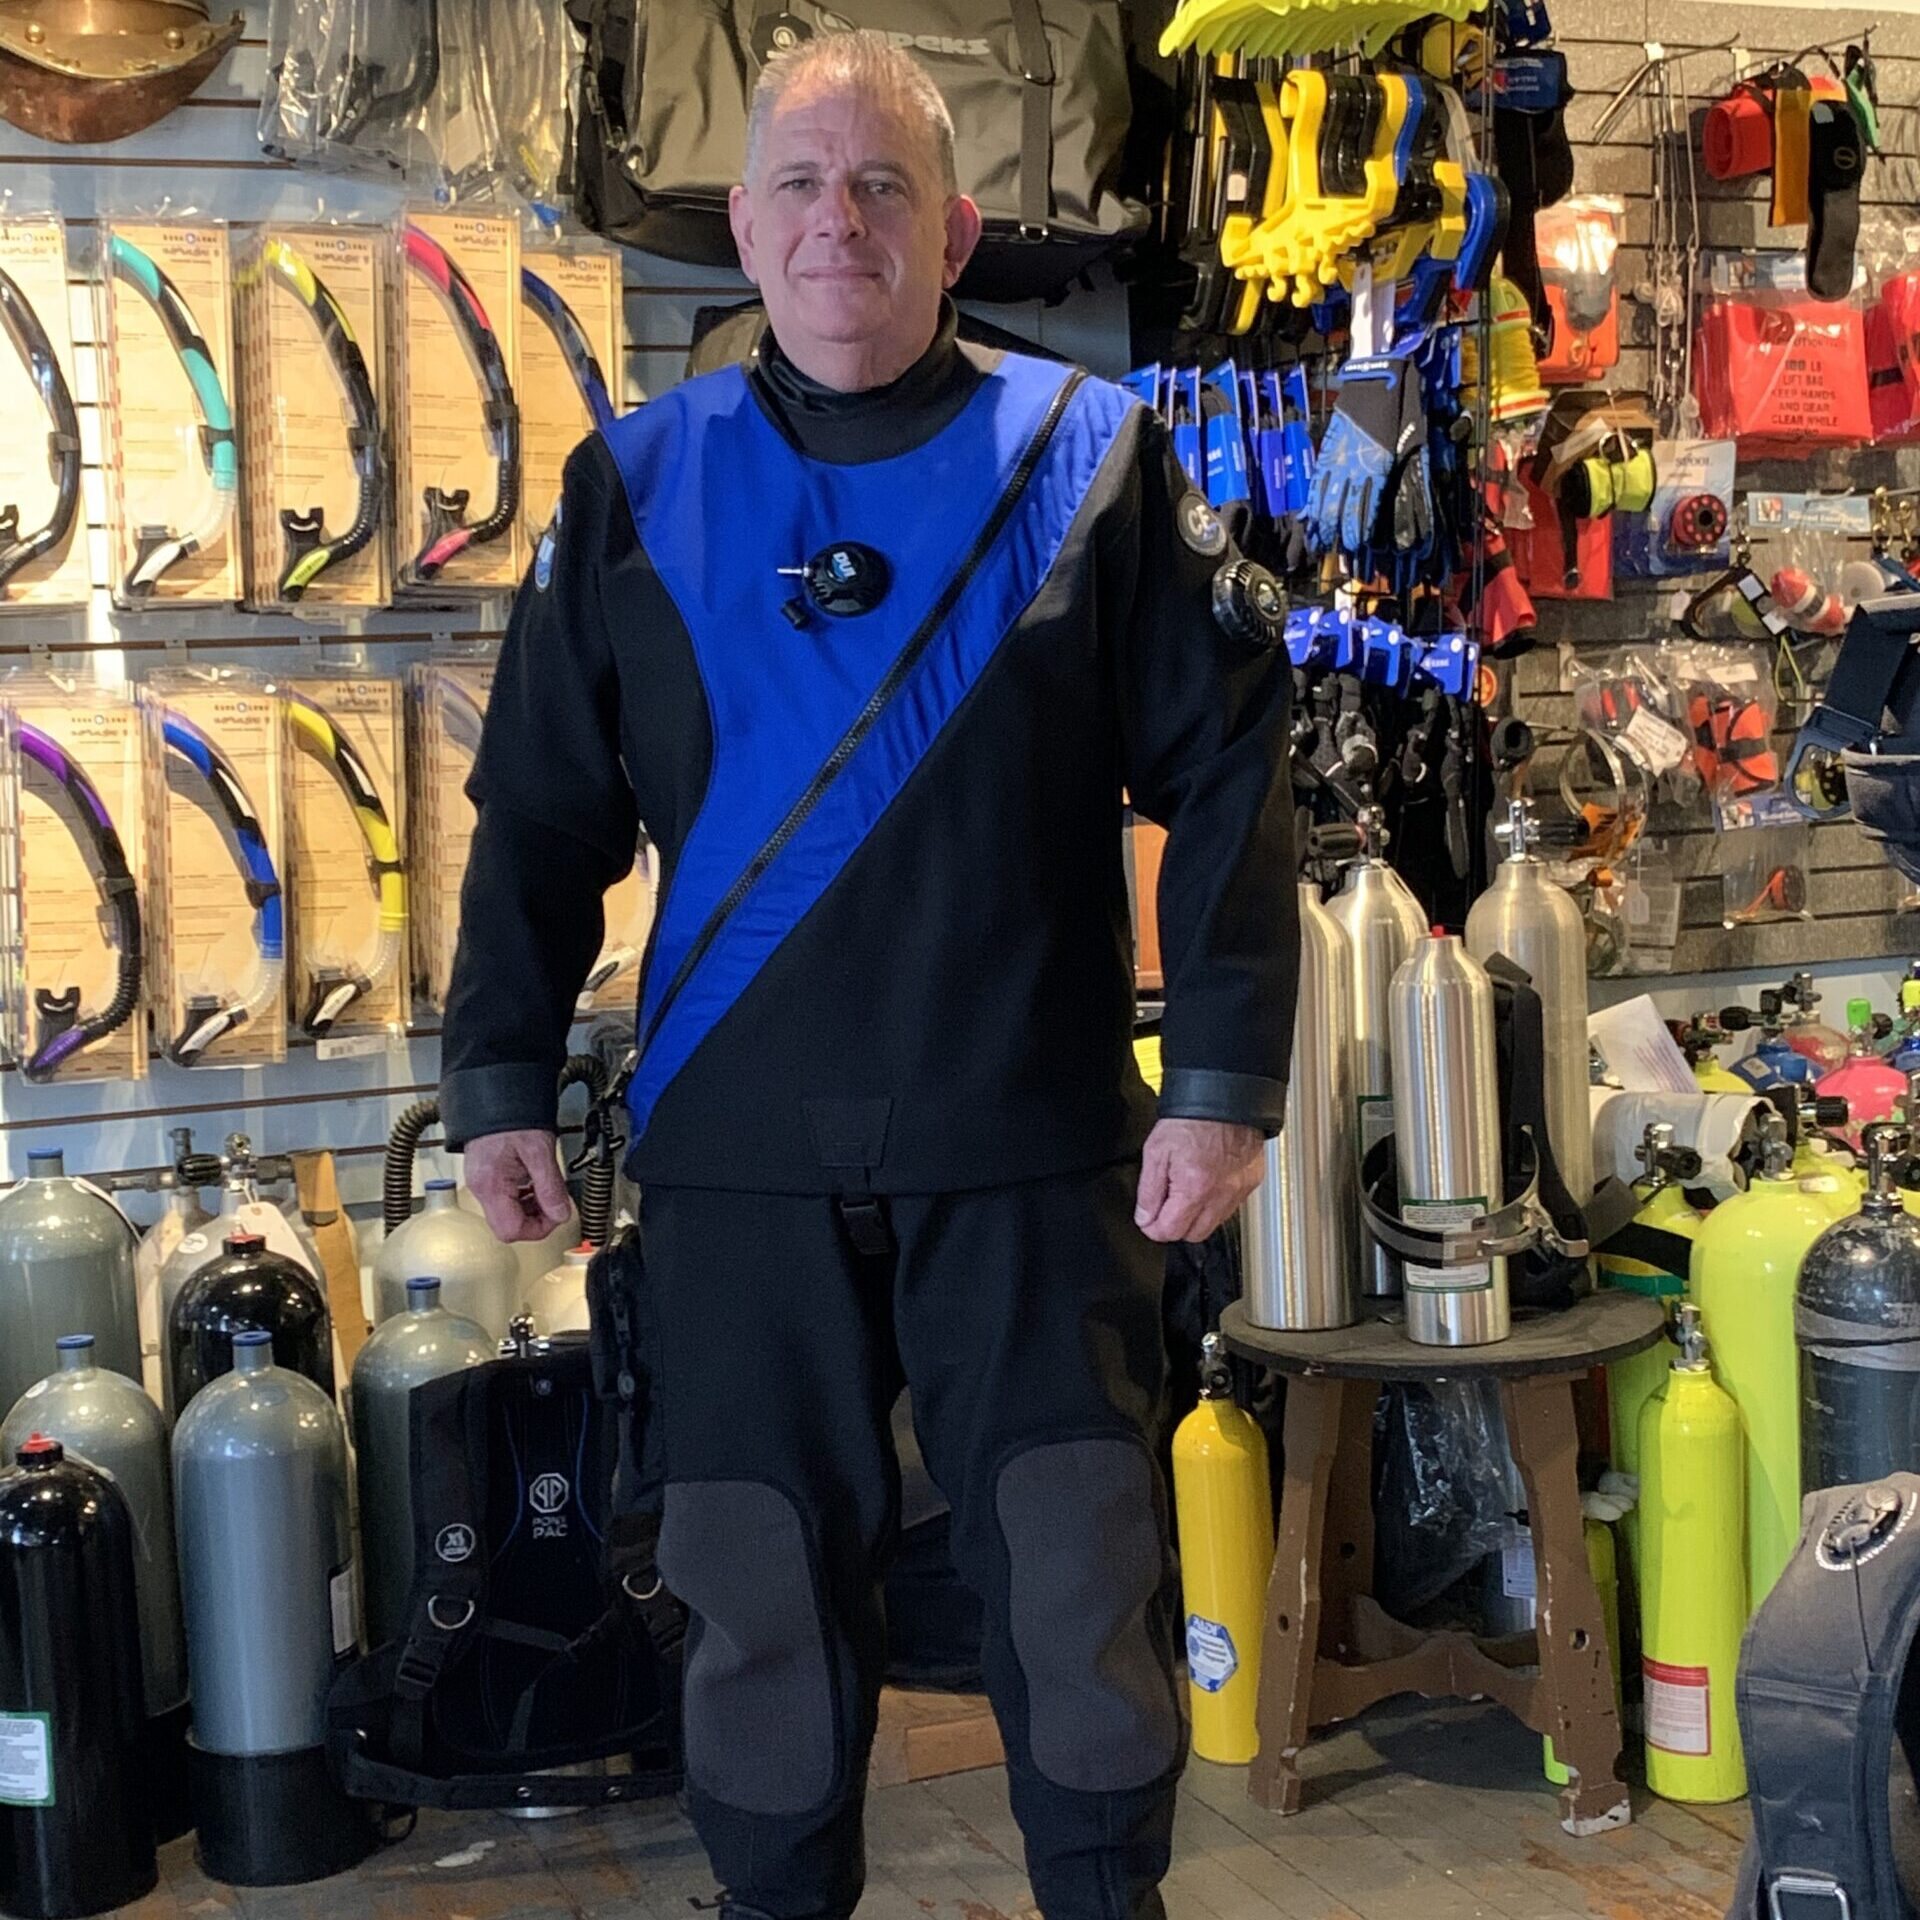 Mike picked up his DUI CF200 Custom Dry Suit! A perfect fit!